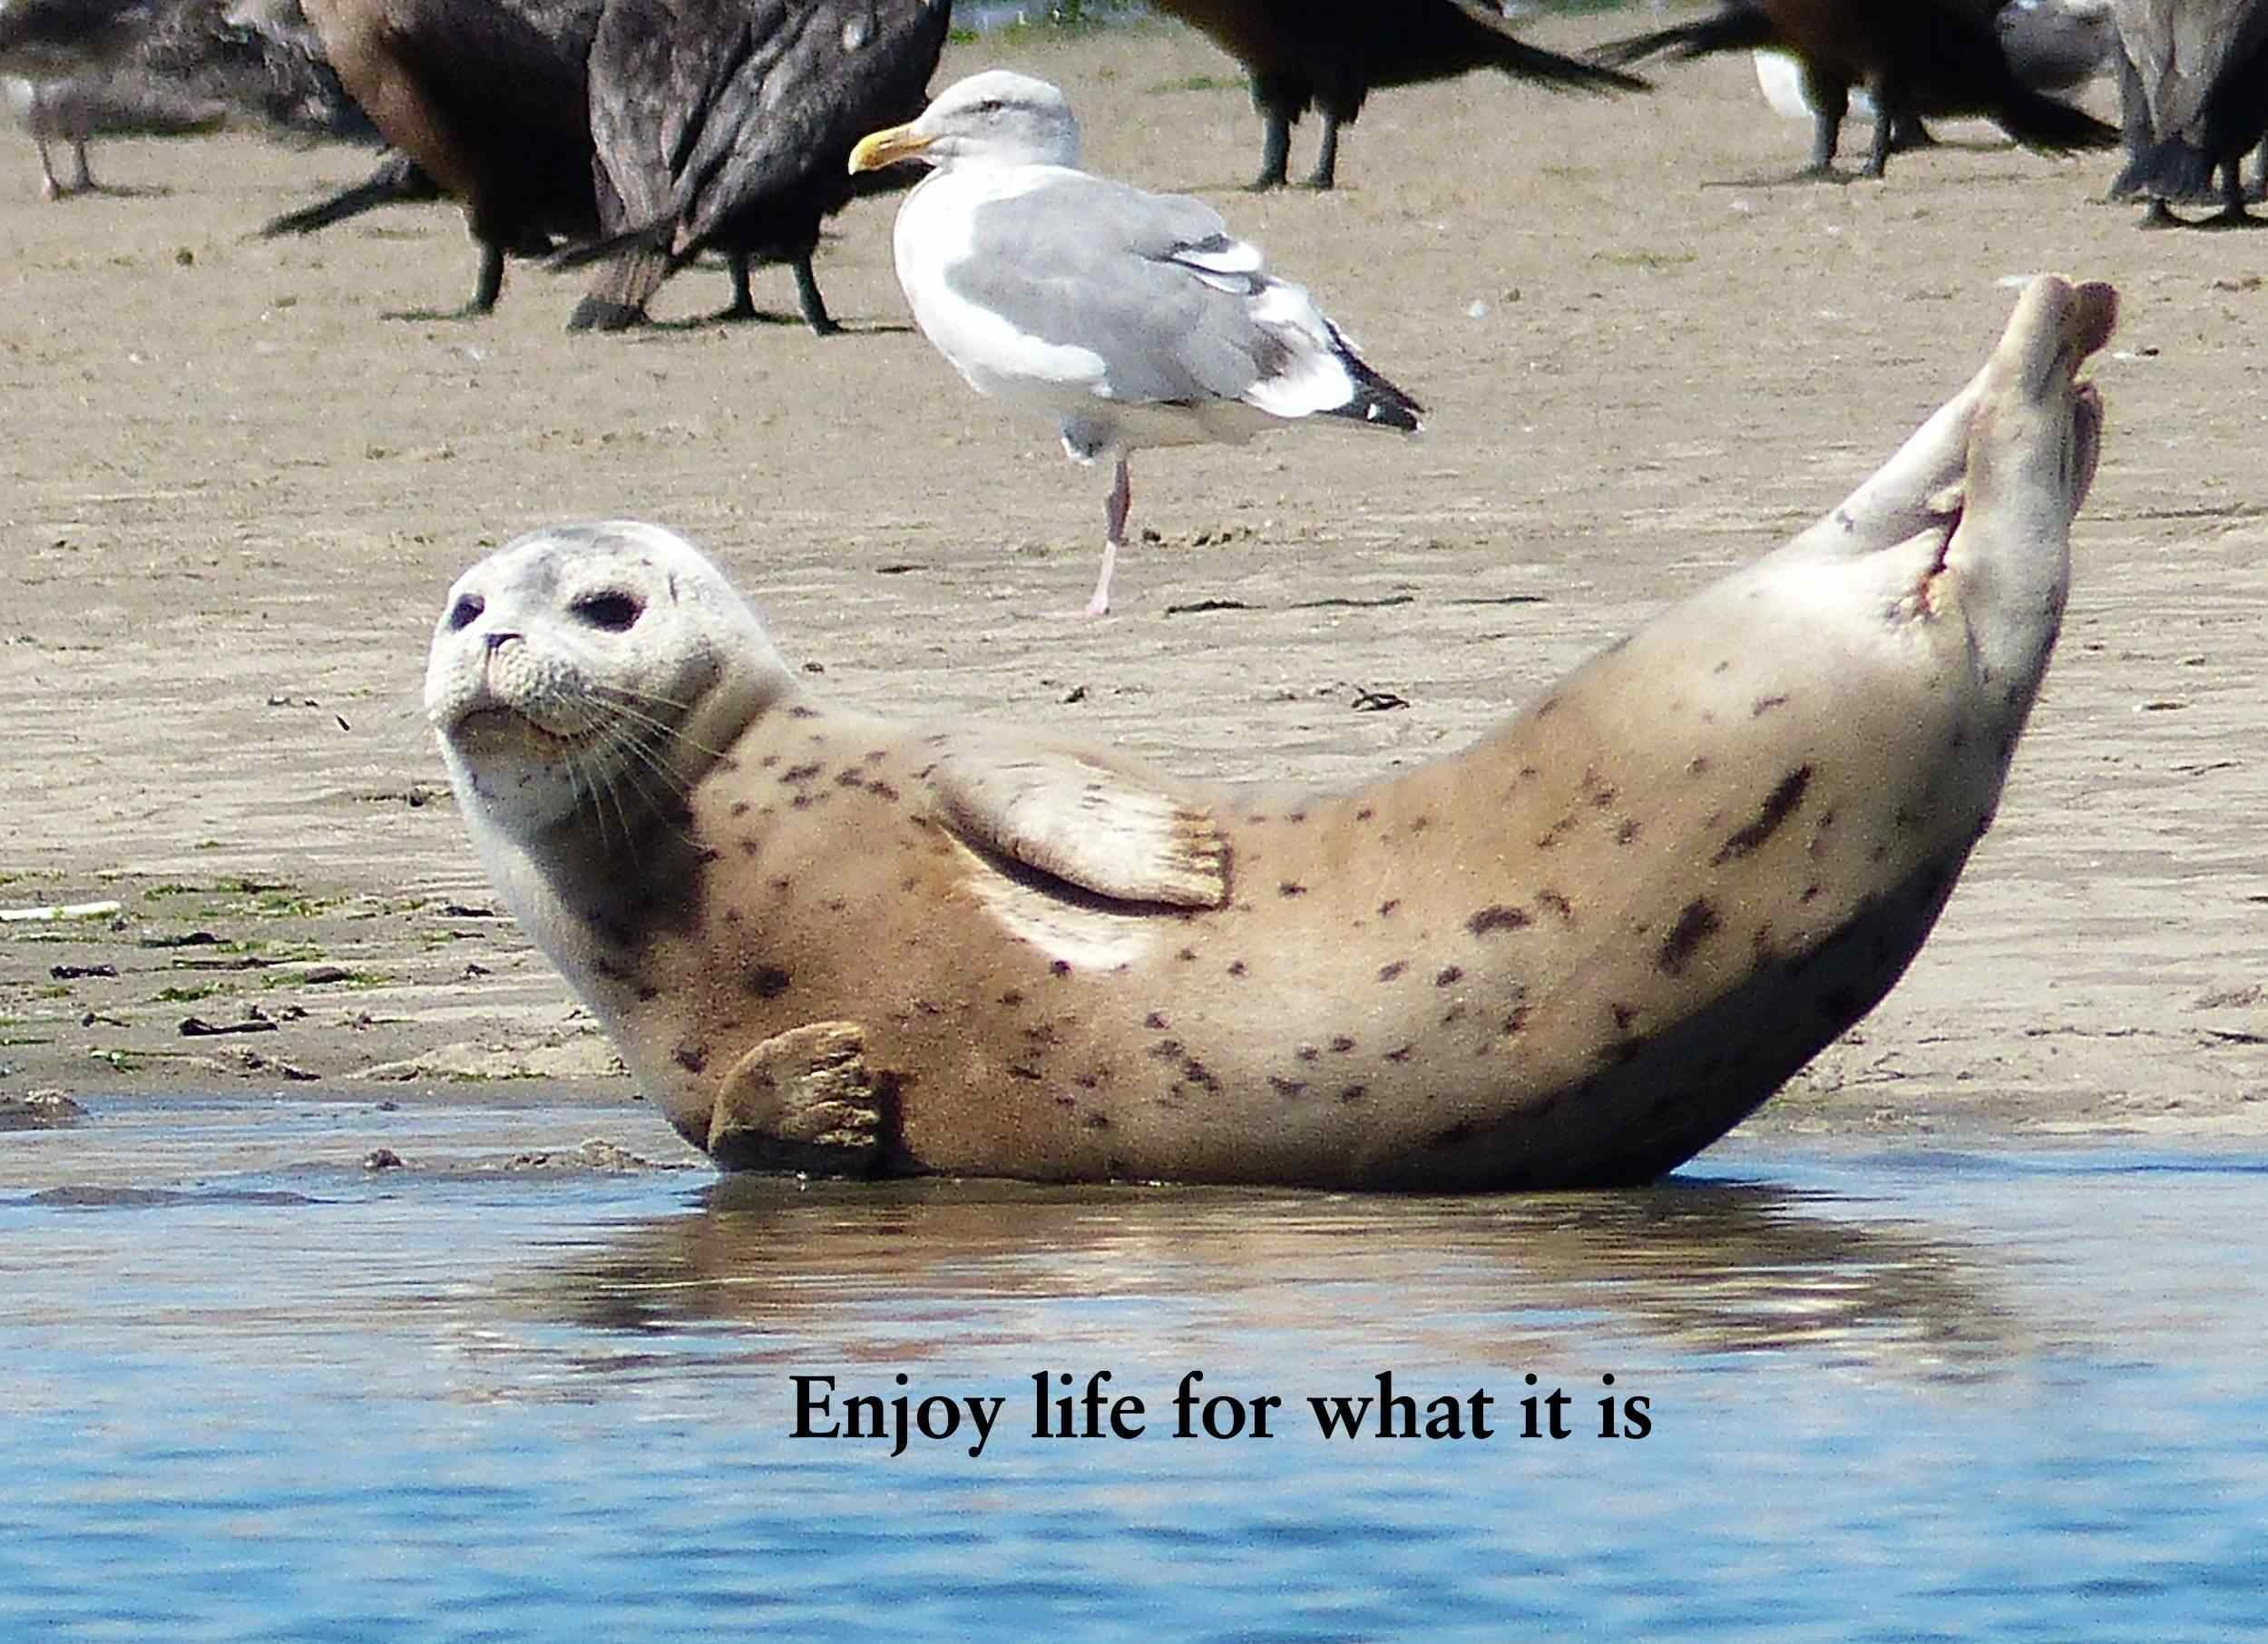 Enjoy life for what it is.jpg